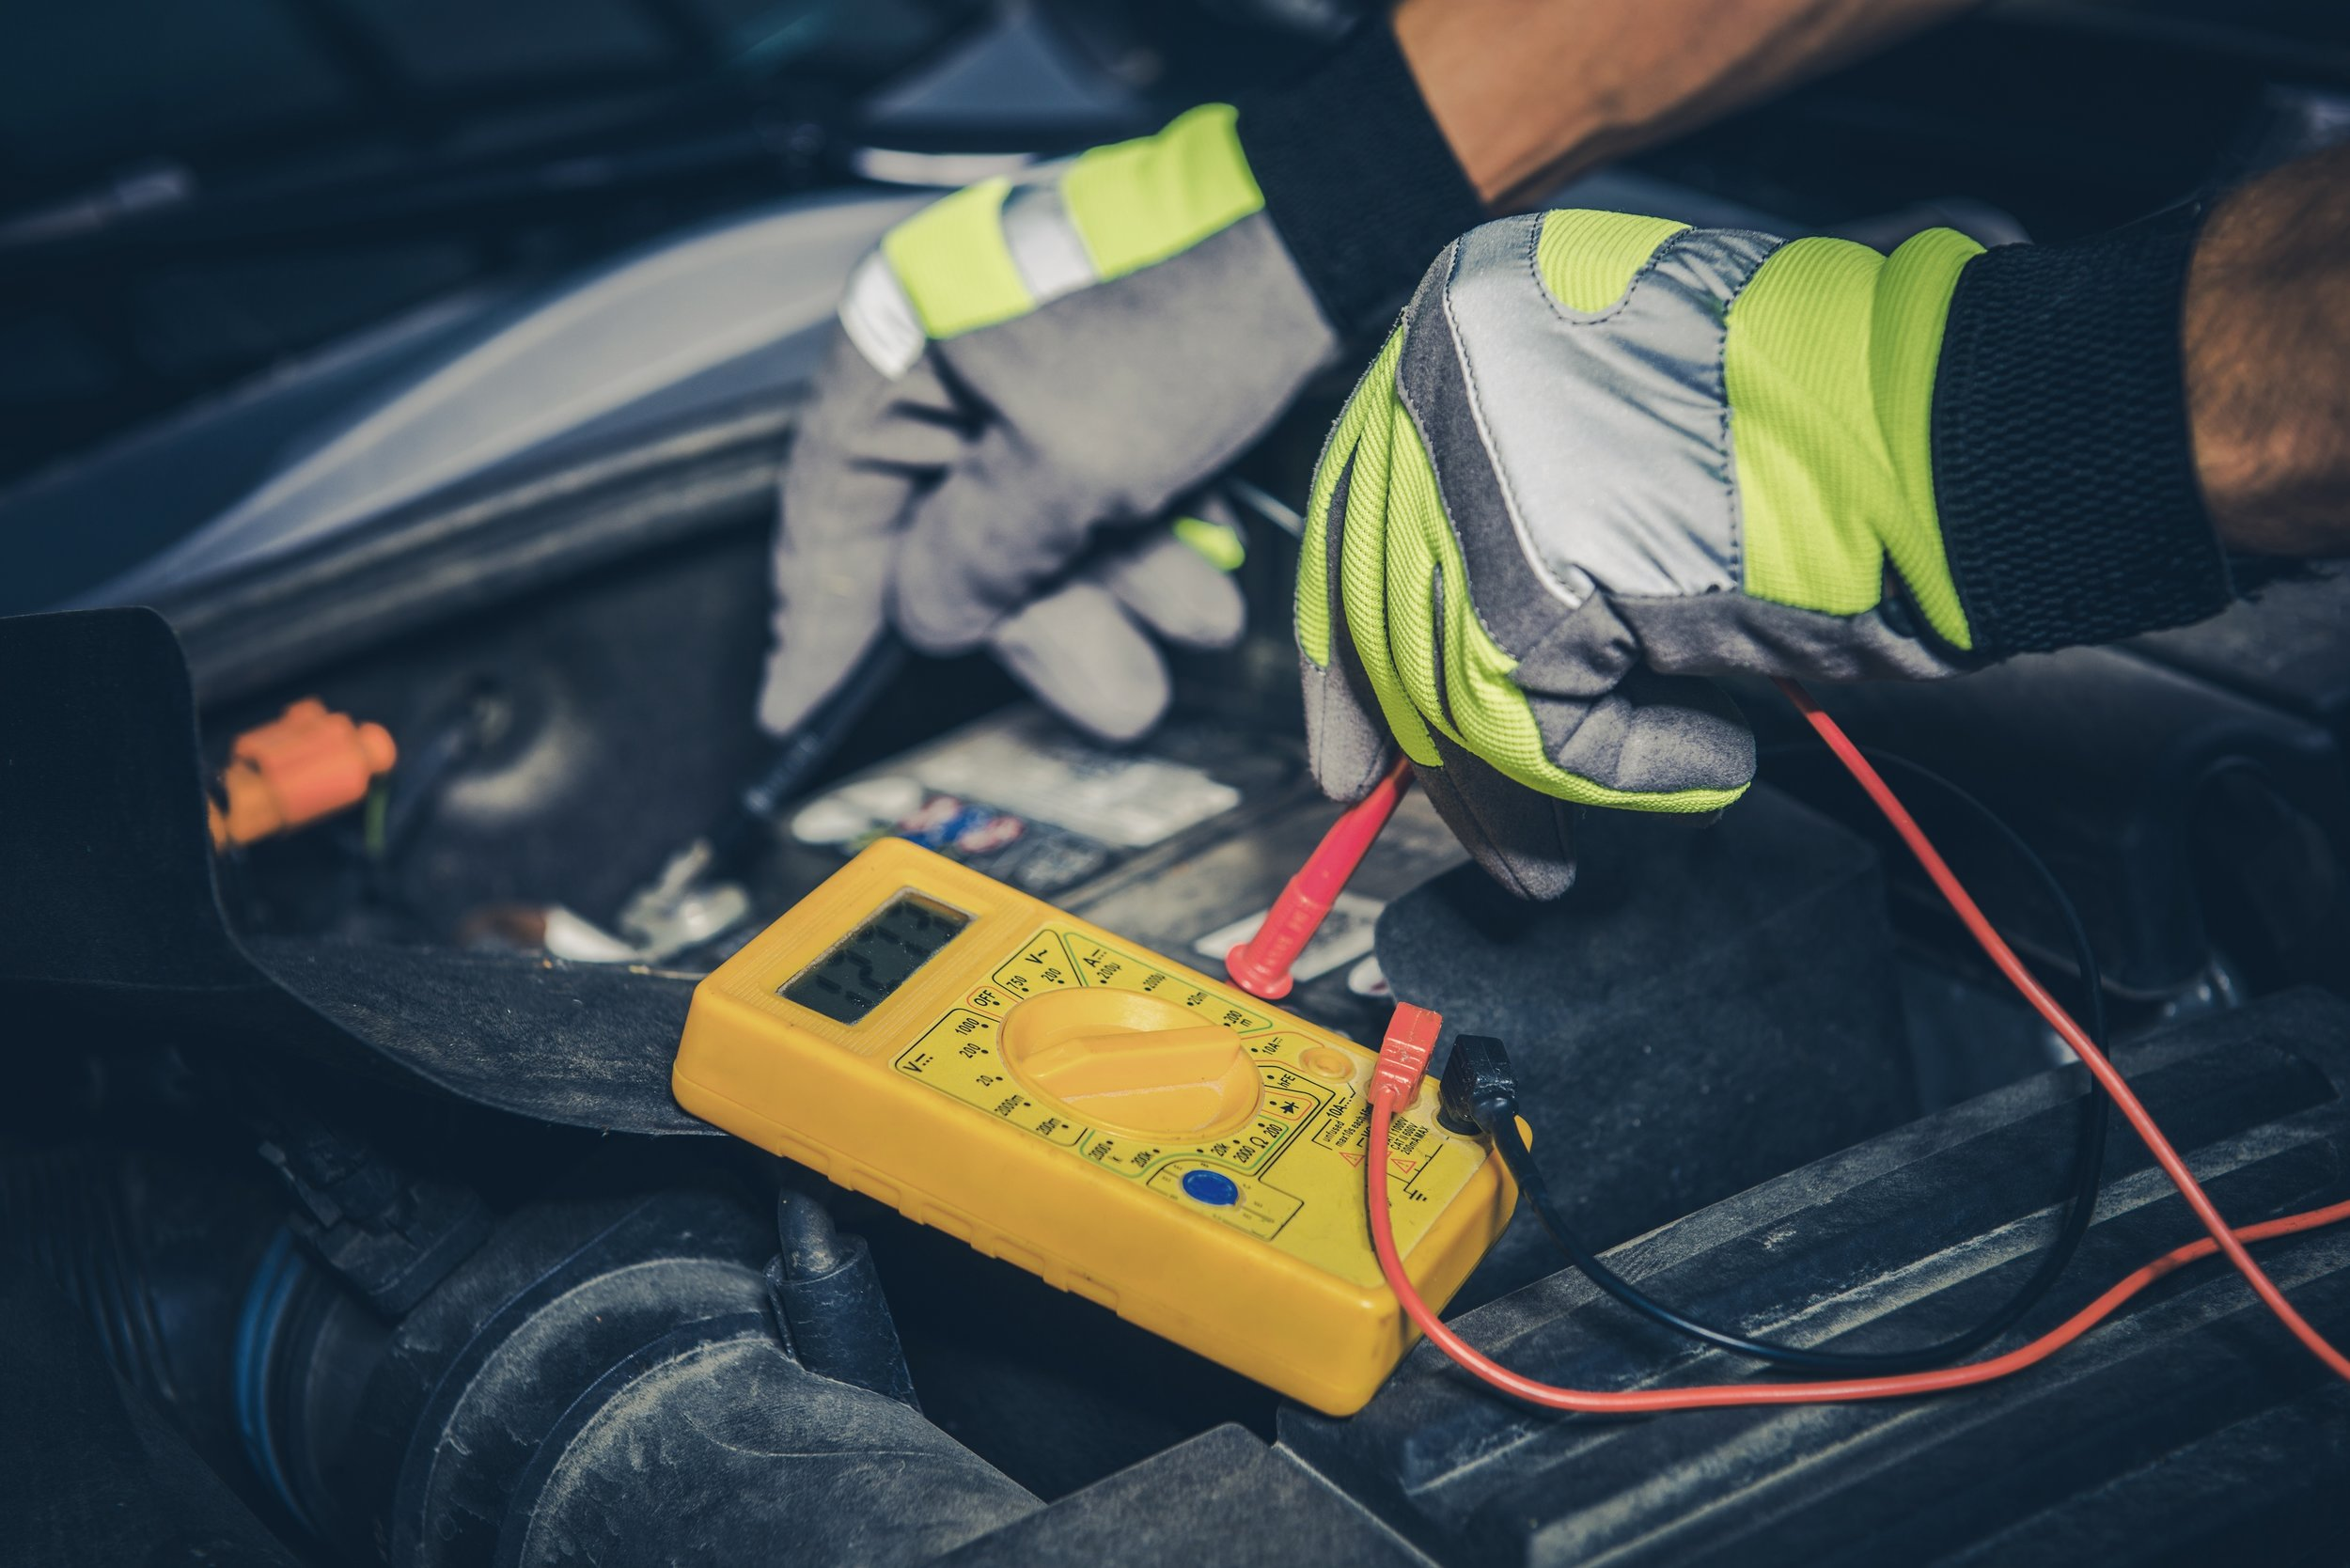 24 Hour Car Battery Delivery & Install in San Antonio Texas.